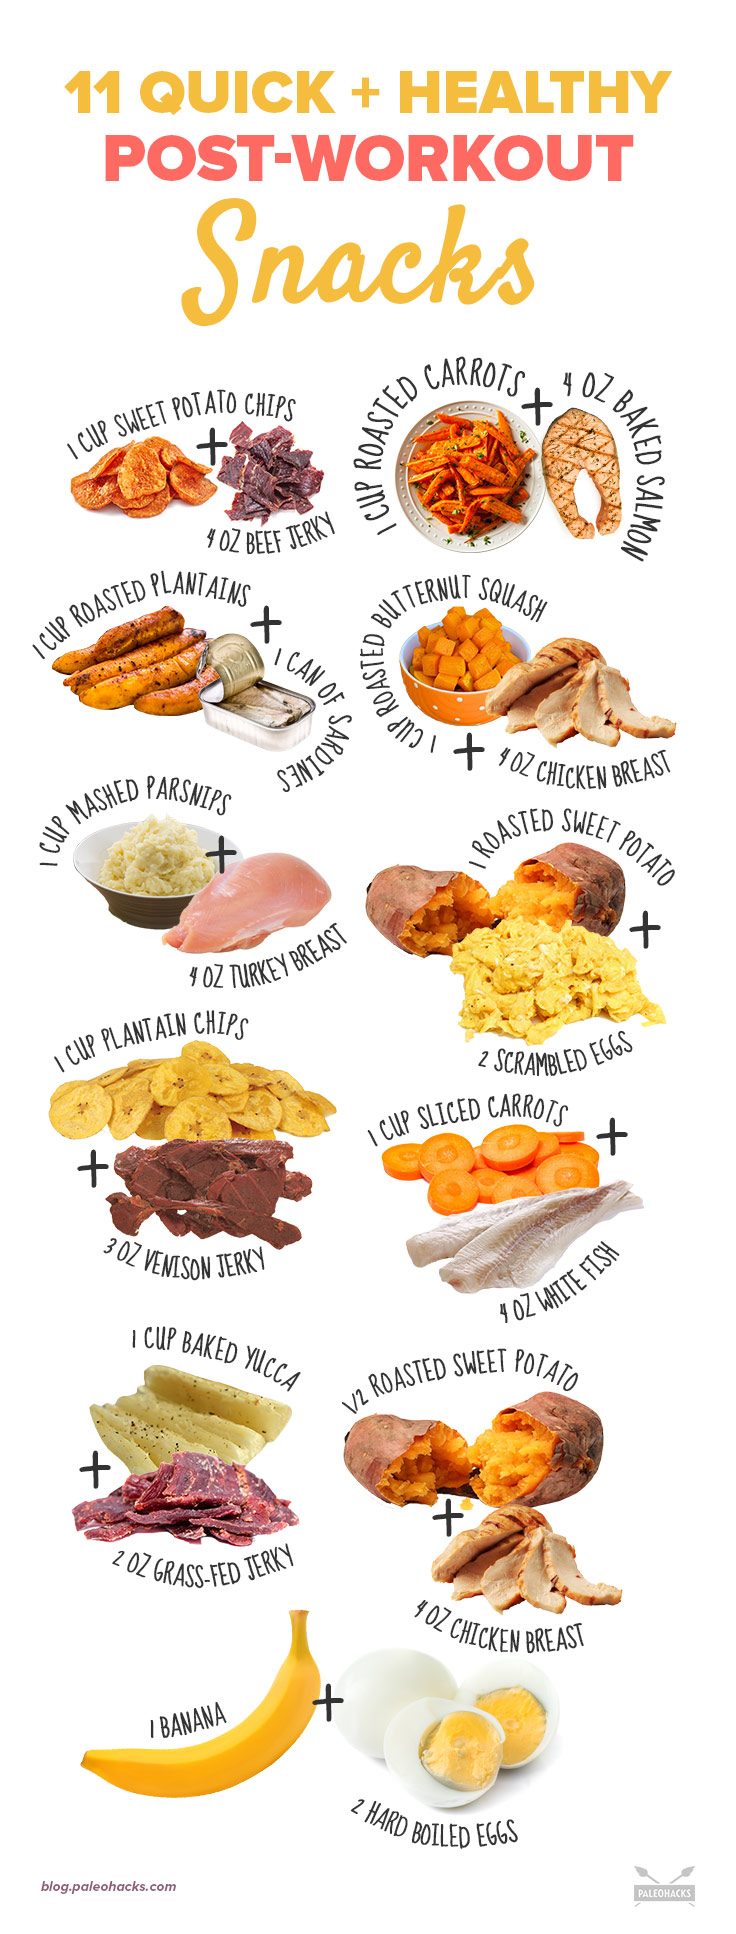 Best Recovery Foods After A Workout